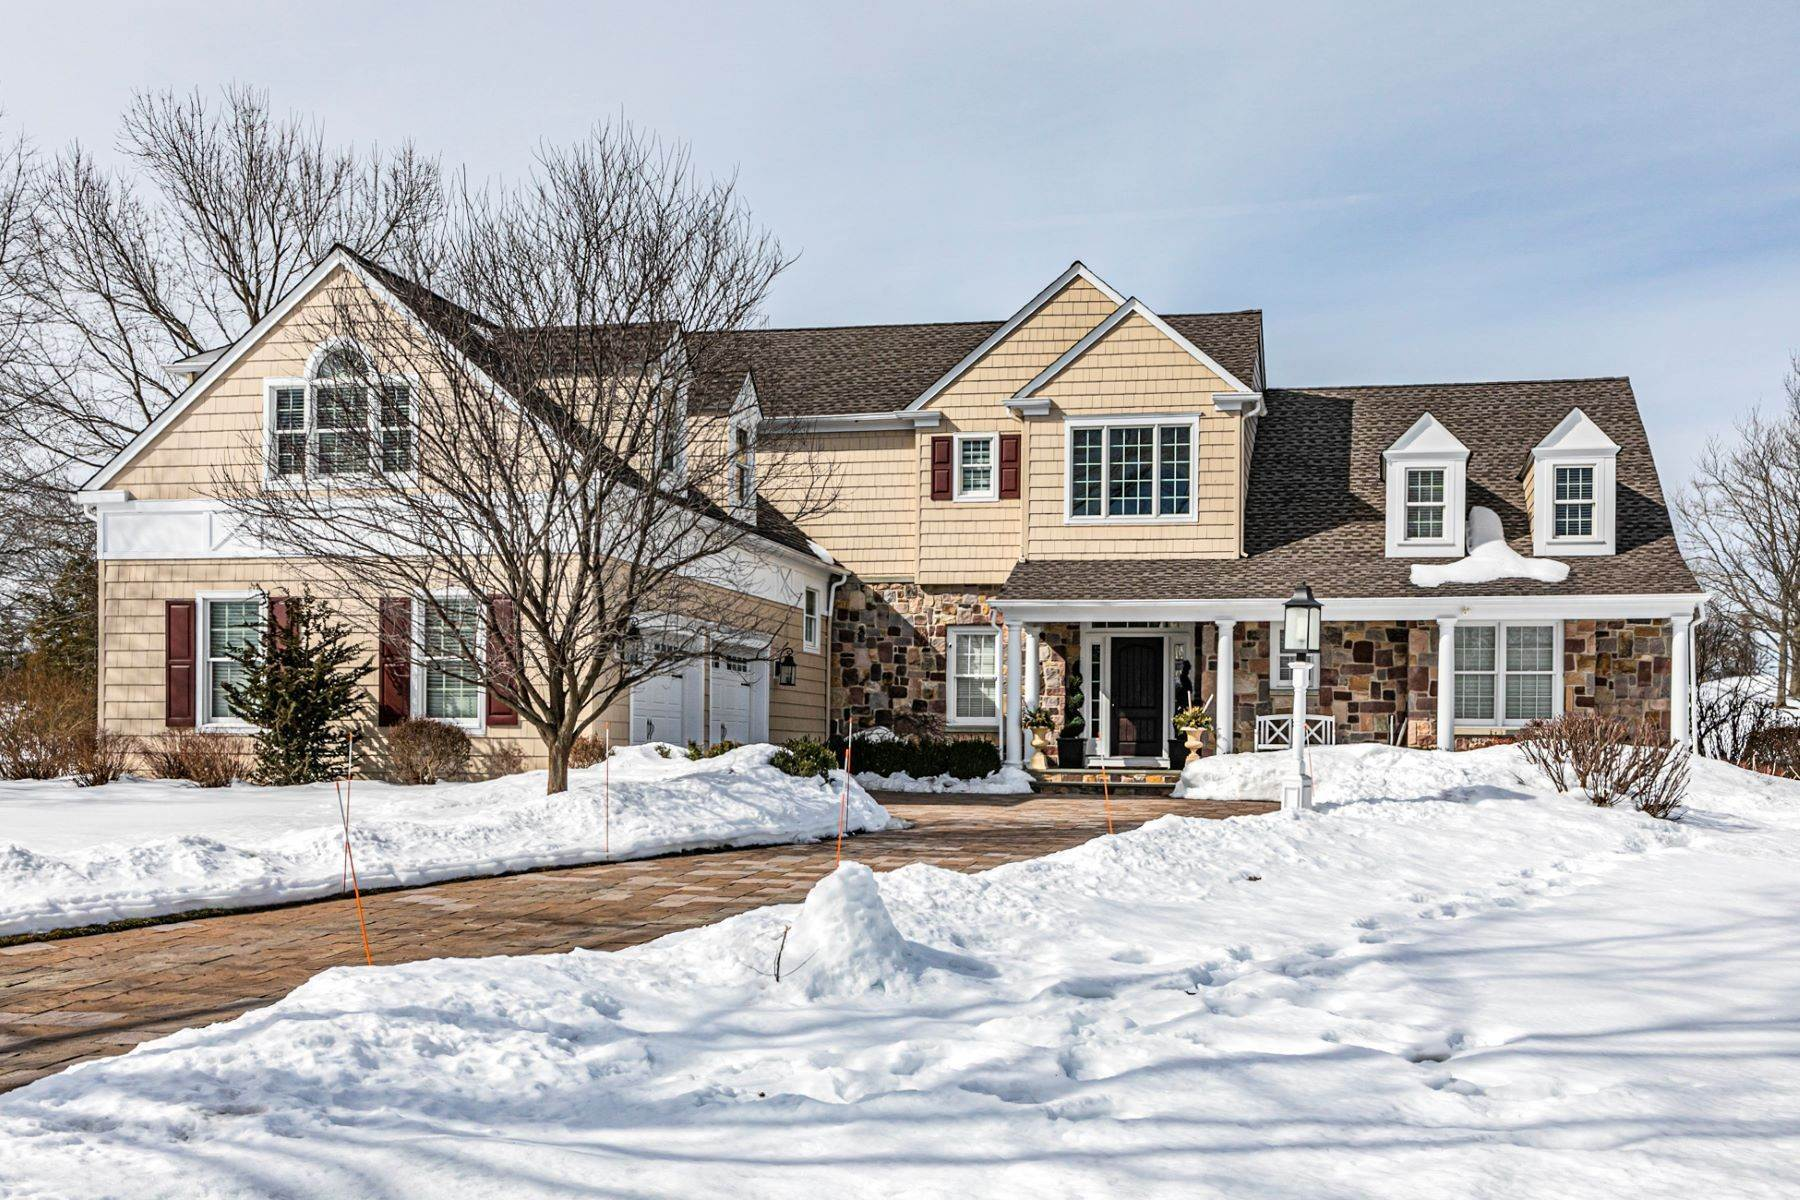 Single Family Homes for Sale at Luxury Abounds In This Impressive Cherry Valley Home 7 Augusta Court Skillman, New Jersey 08558 United States